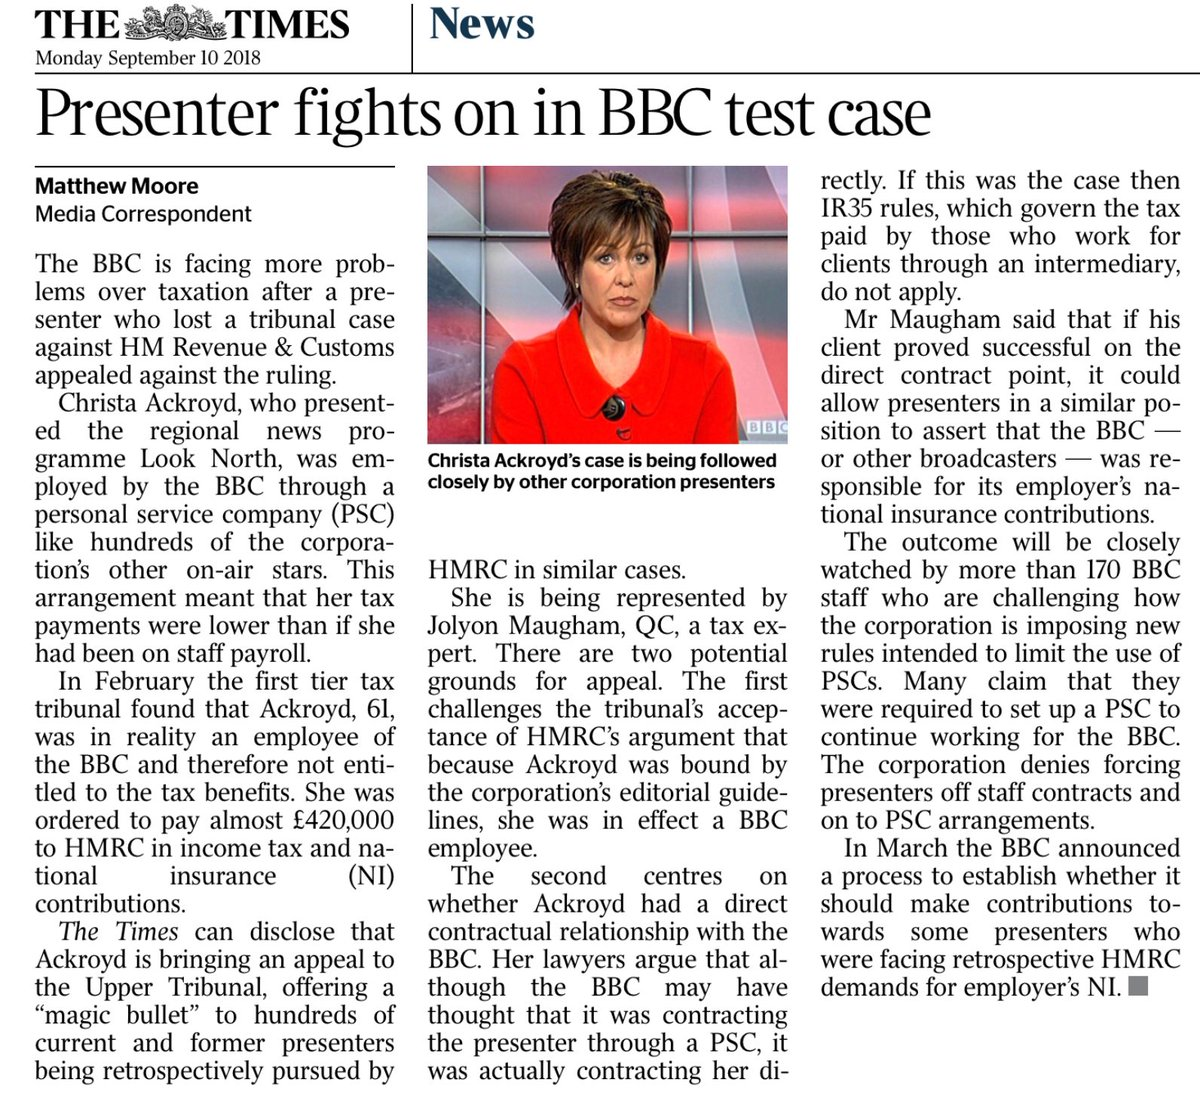 BBC faces two big challenges in presenter's appeal against employment status ruling https://t.co/B3FxEOlThz